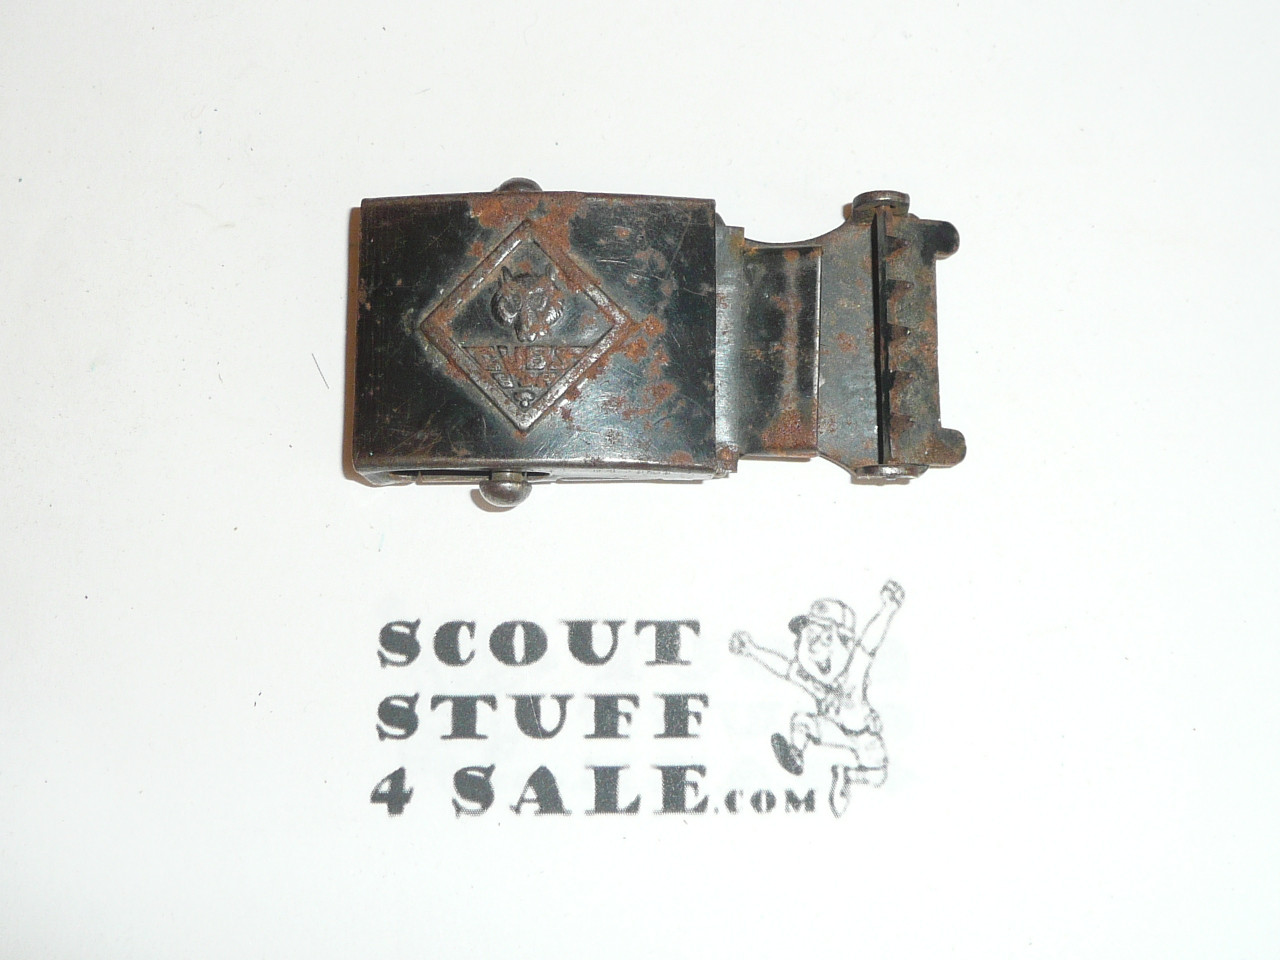 1930's Cub Scout Friction Belt Buckle, used